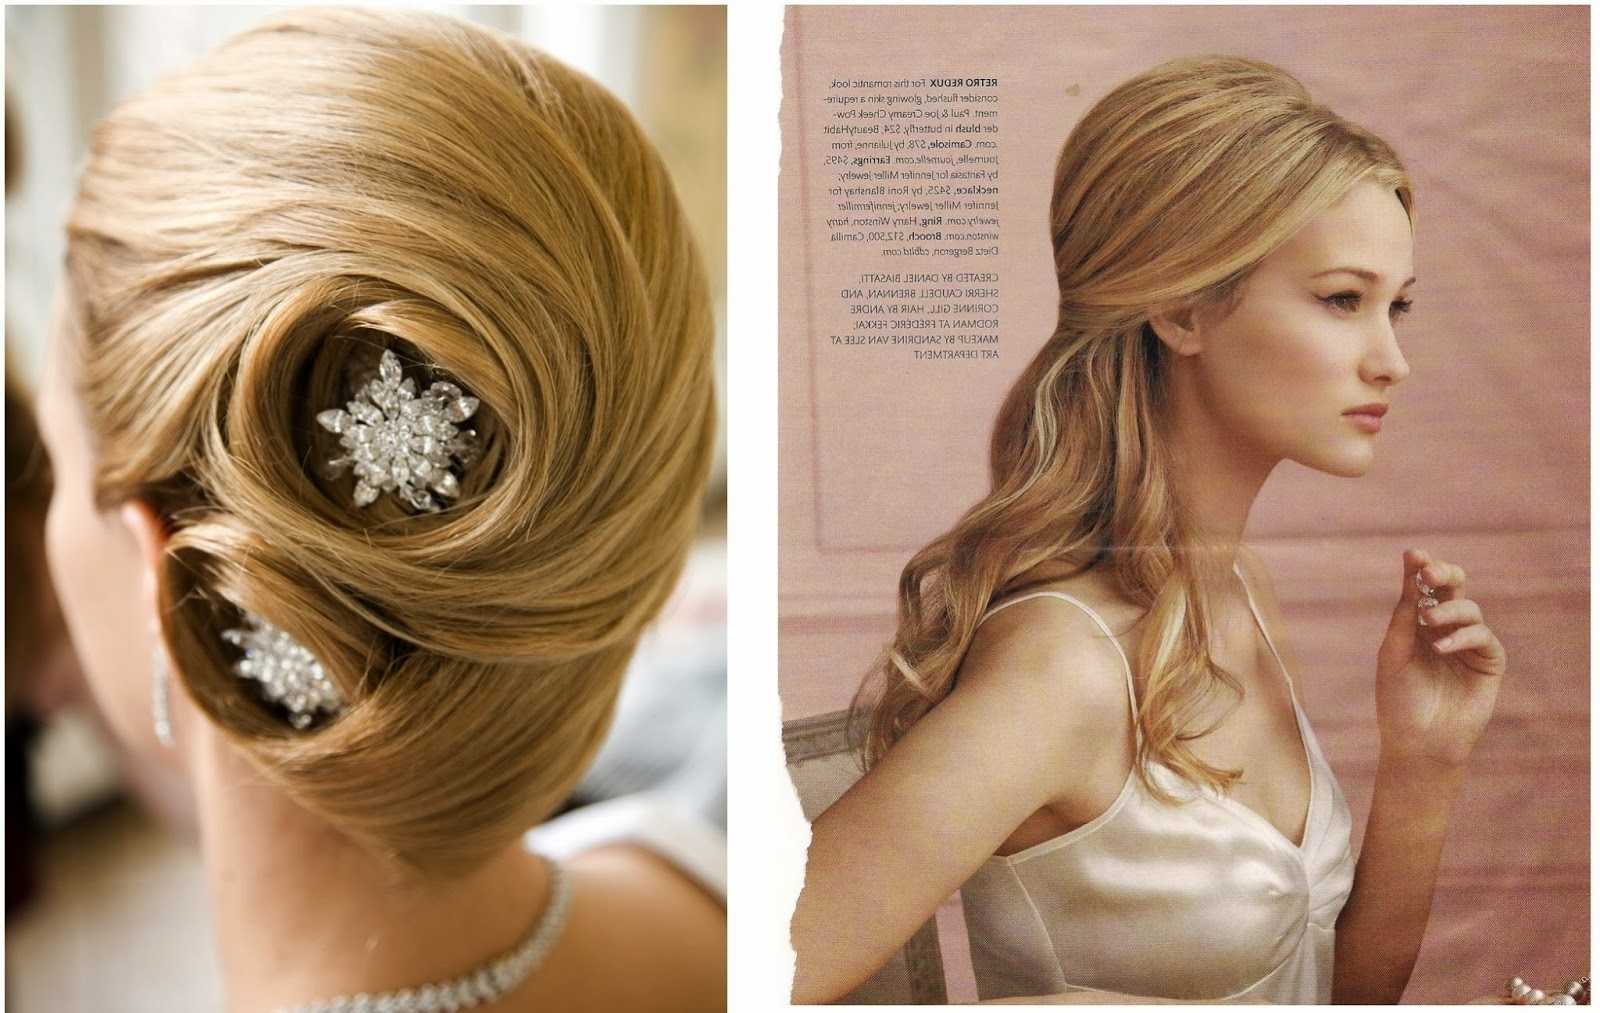 Braided Hairstyles For Long Hair Wedding (View 7 of 15)